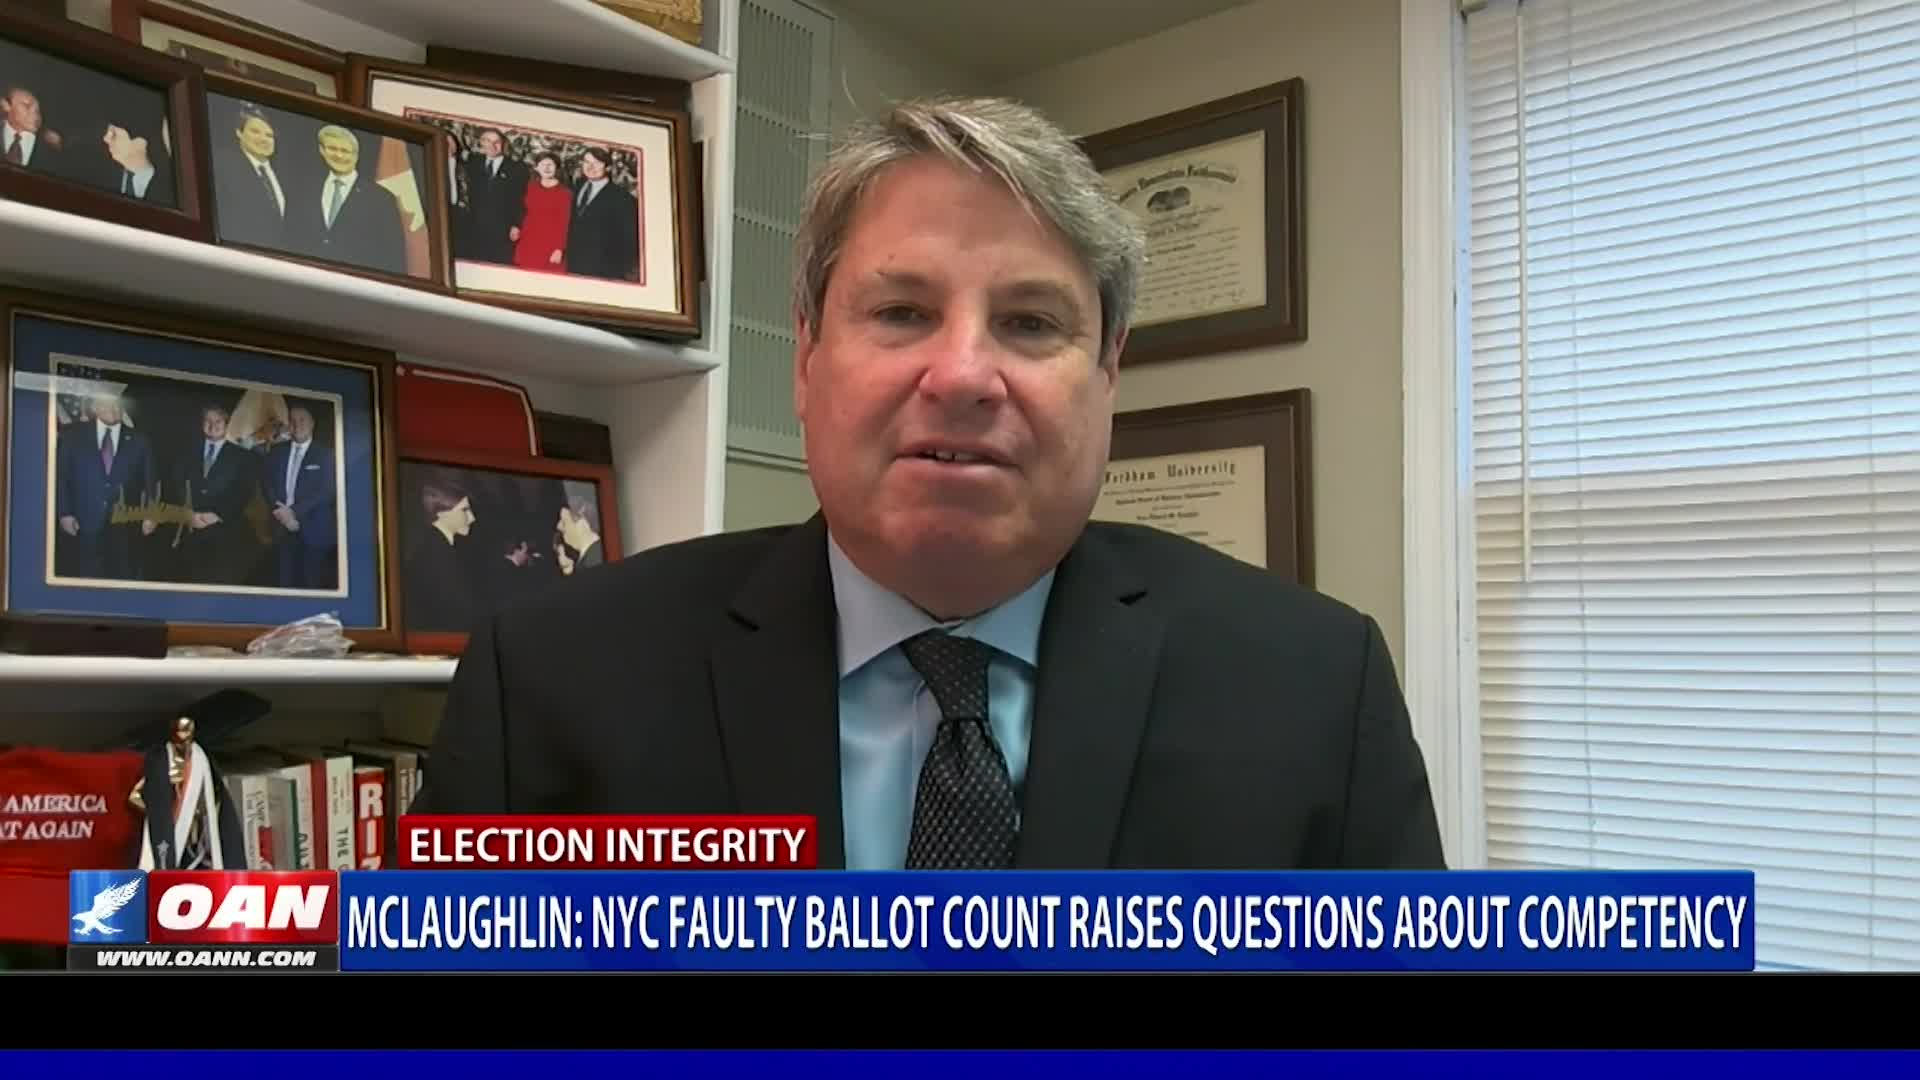 John McLaughlin: NYC faulty ballot count raises questions about competency